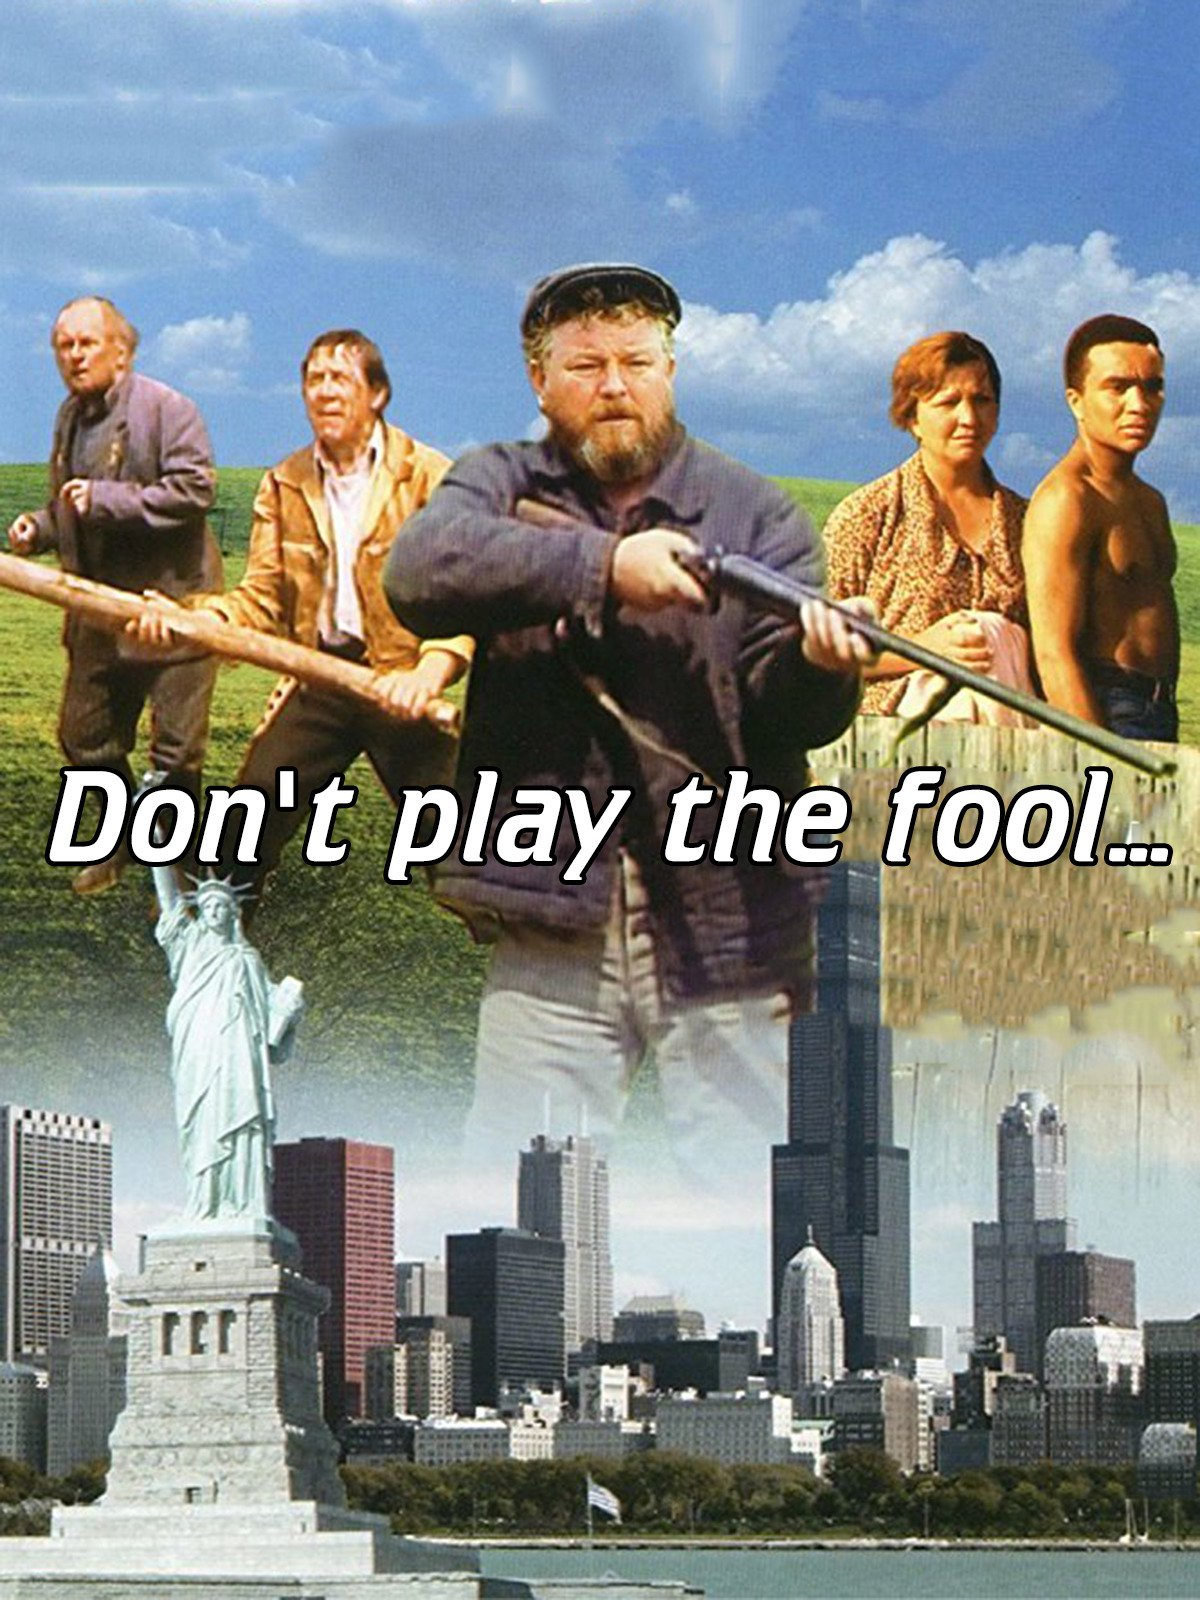 Don't play the fool